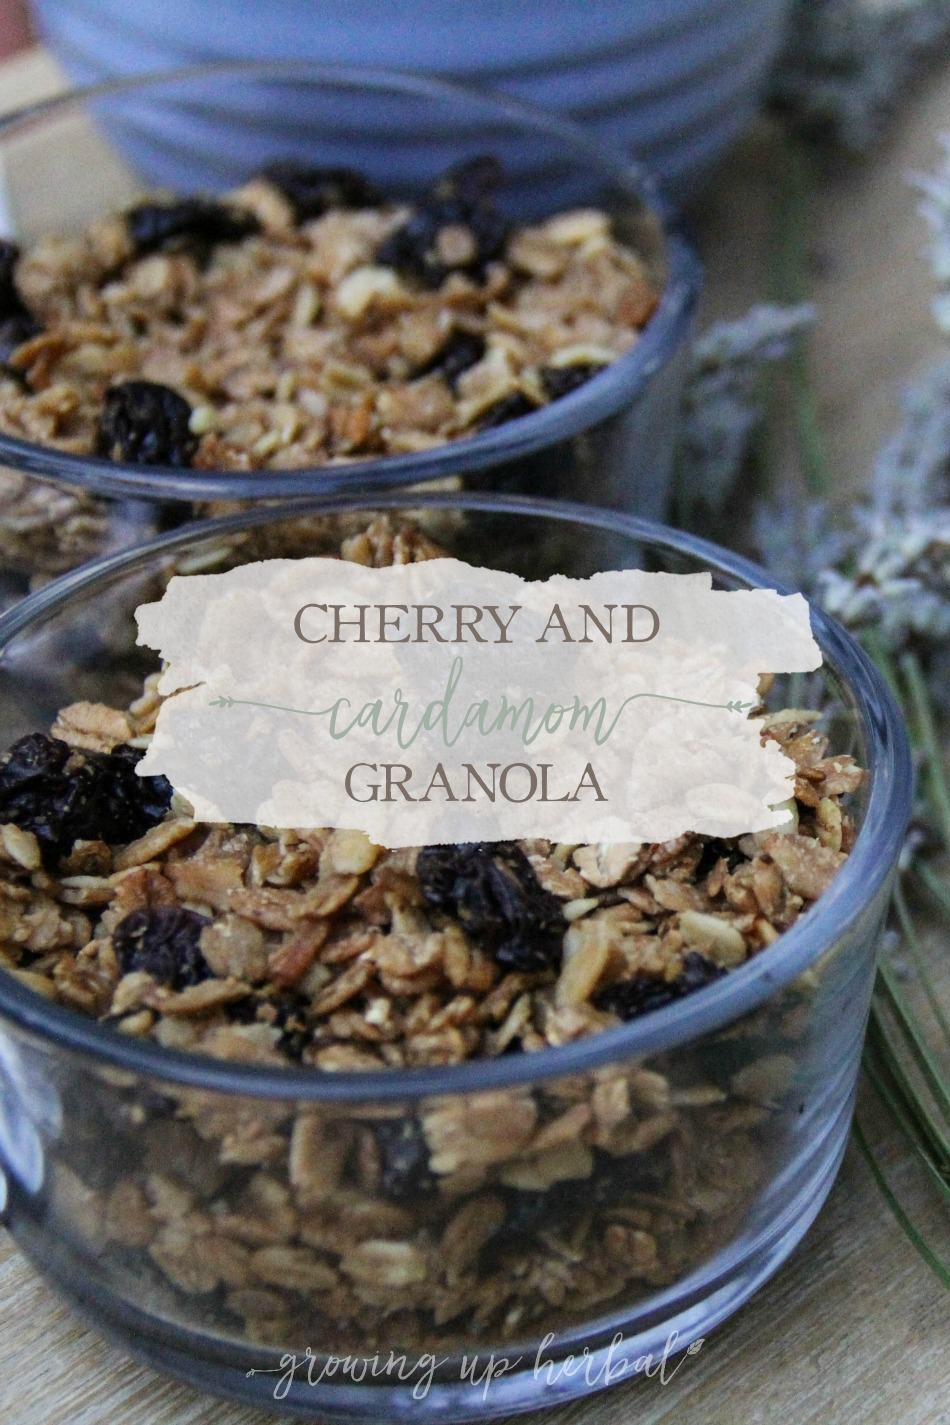 Cherry And Cardamom Granola | Growing Up Herbal | Learn how to make a delicious breakfast granola using the herb cardamom!